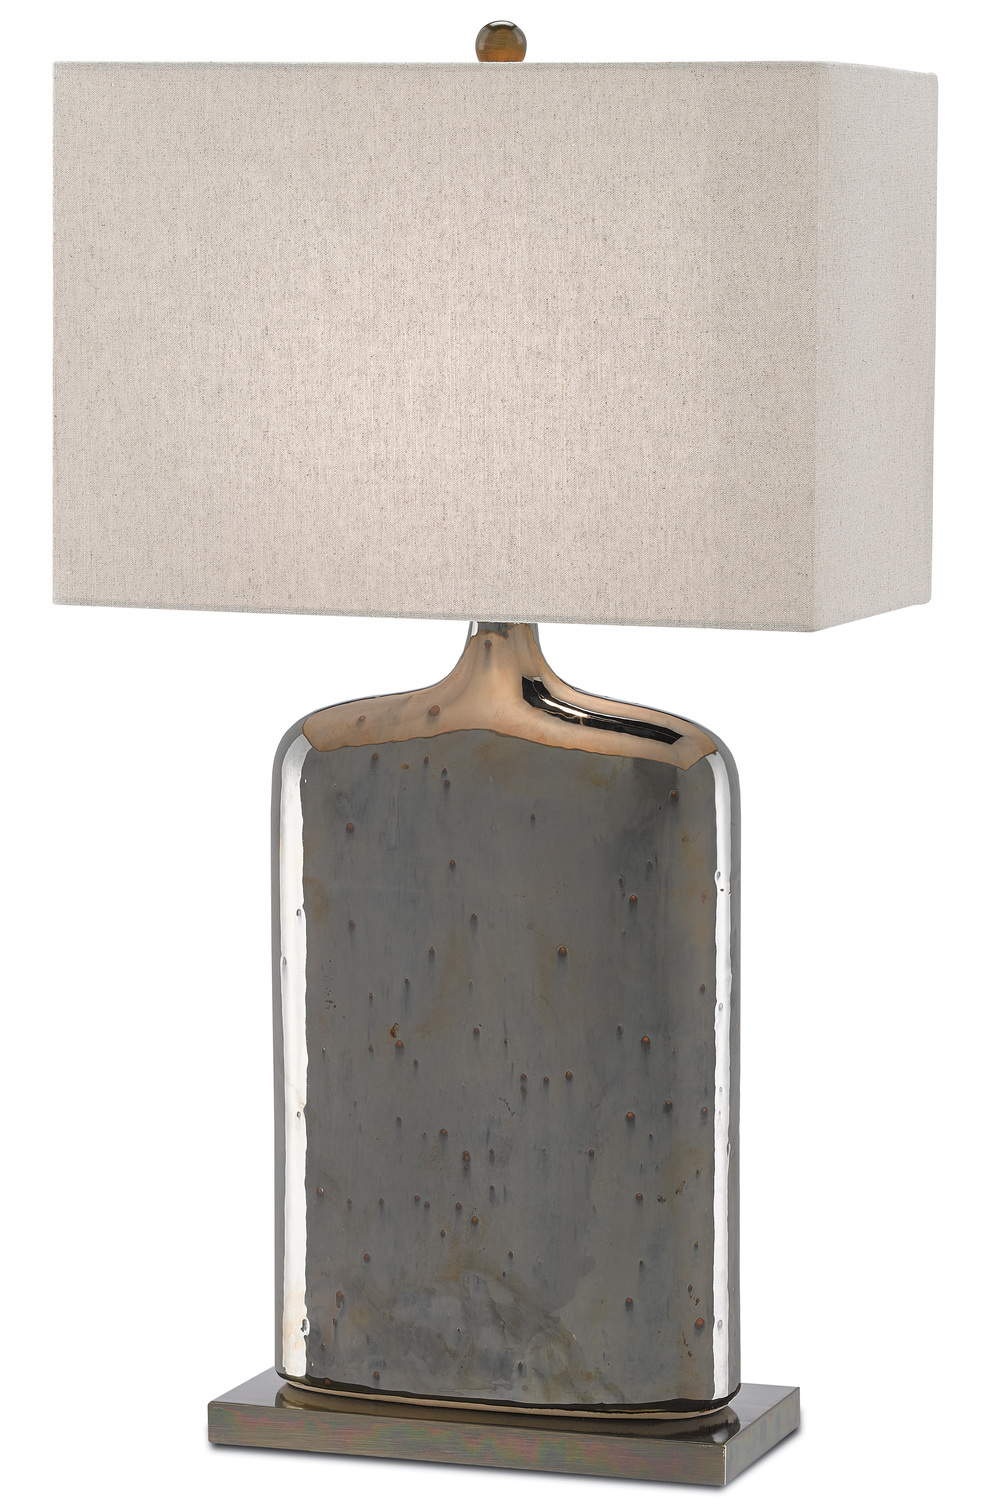 Currey & Company - Musing Table Lamp